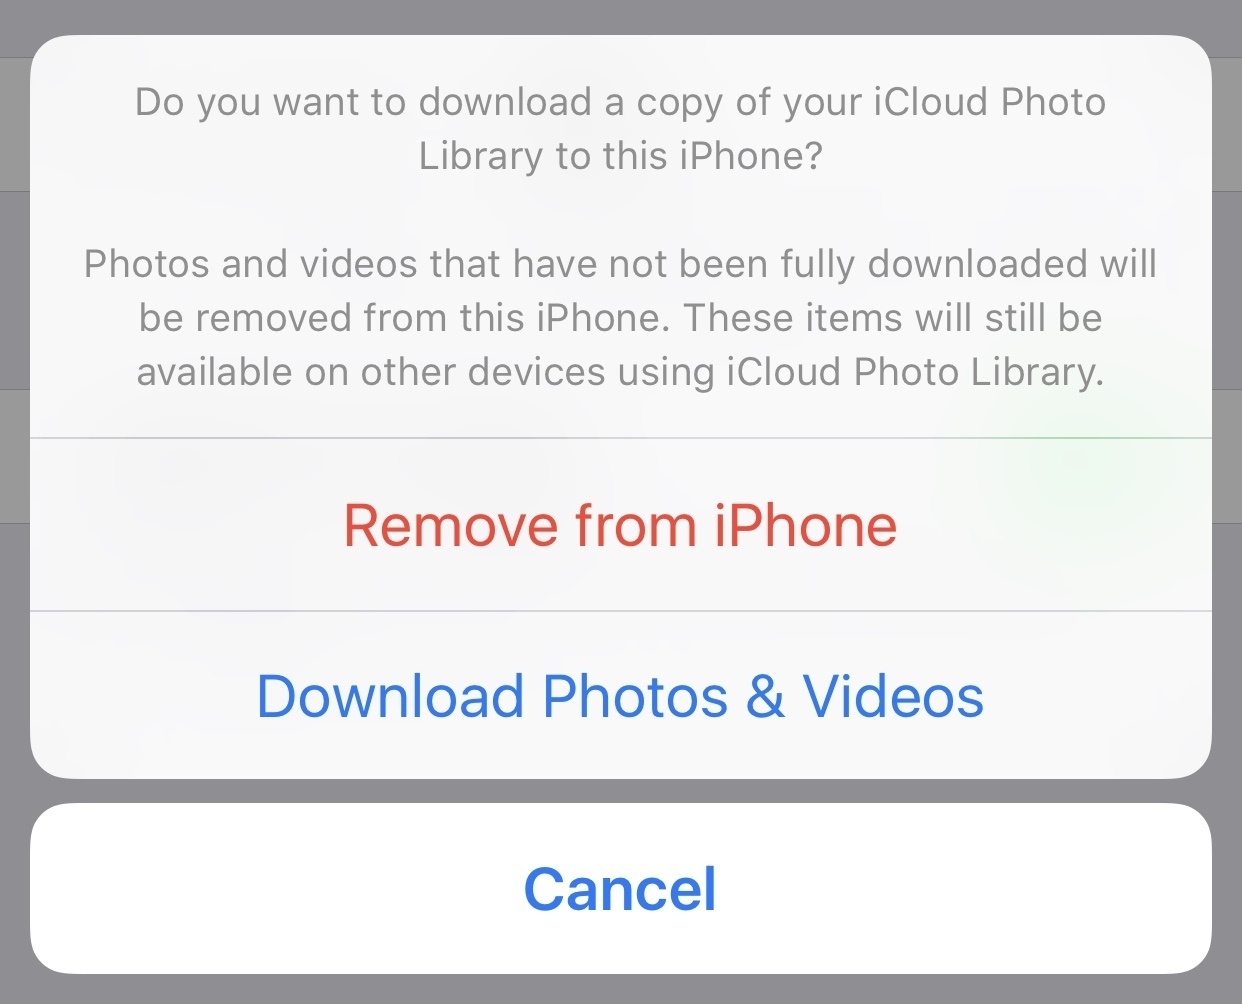 How to delete photos from my icloud photo library